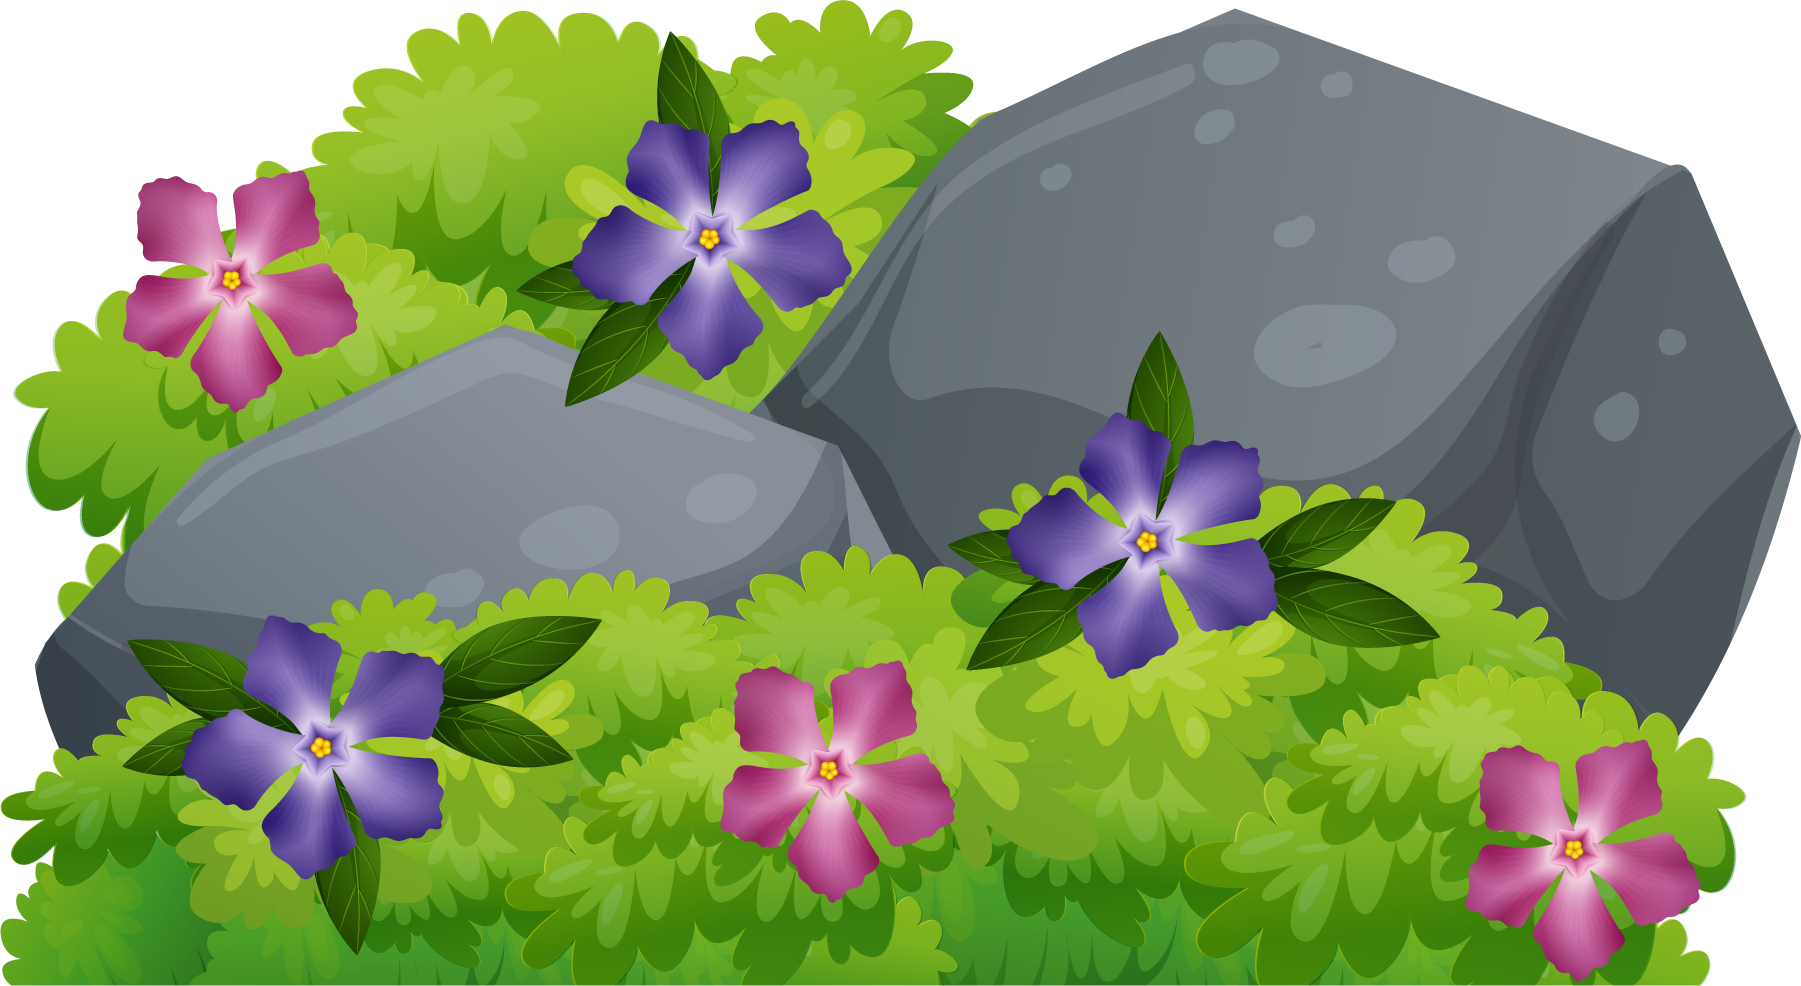 Transparent free images only. Clipart png bush